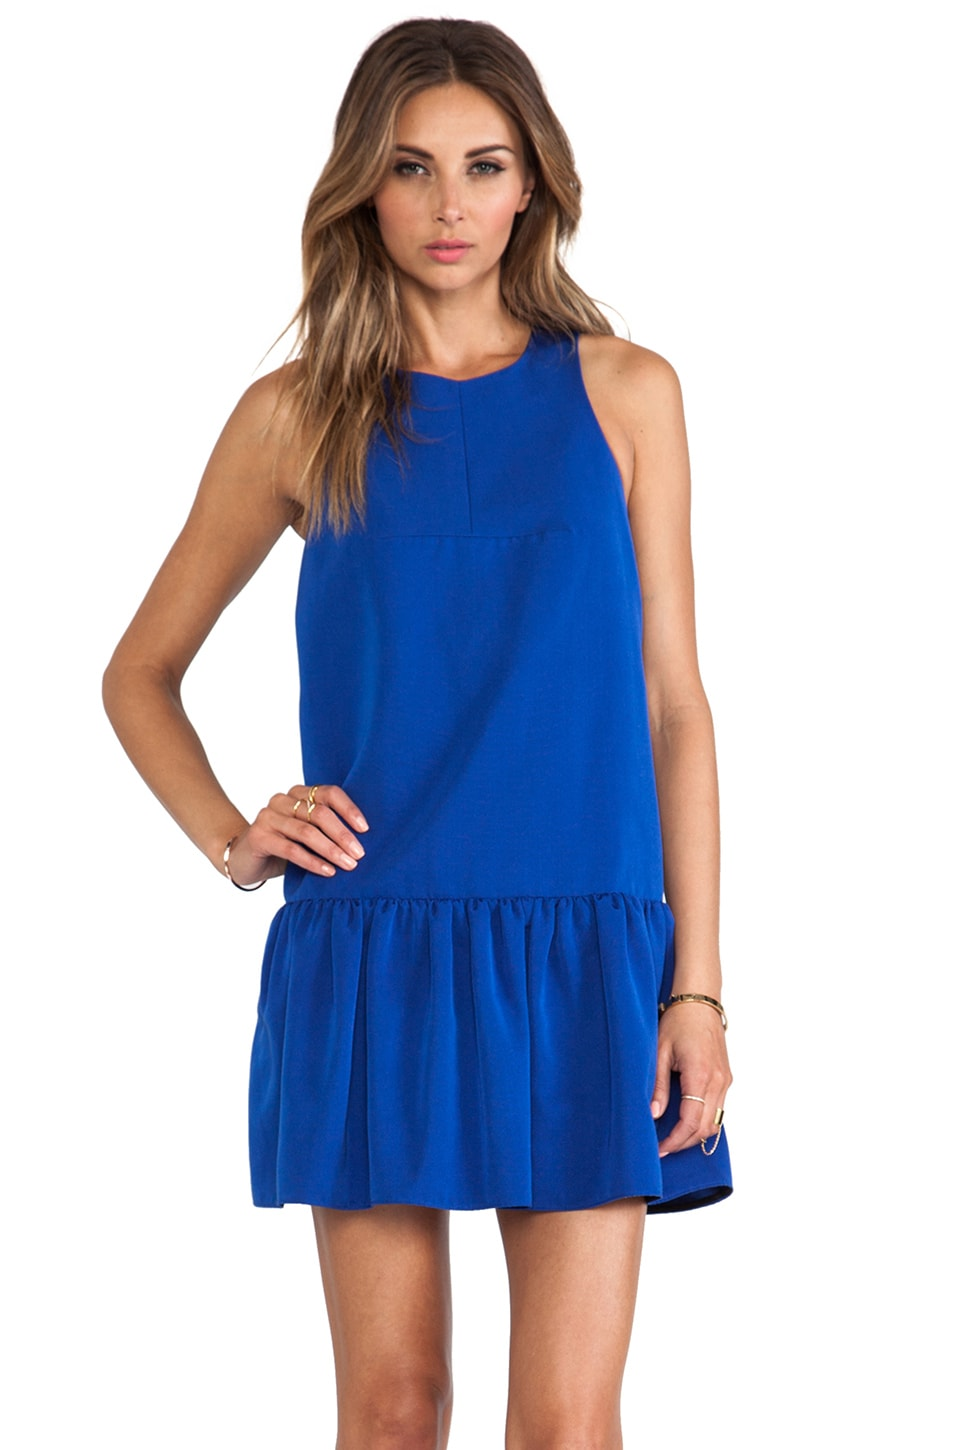 Tibi Katia Faille Dress in Electric Blue